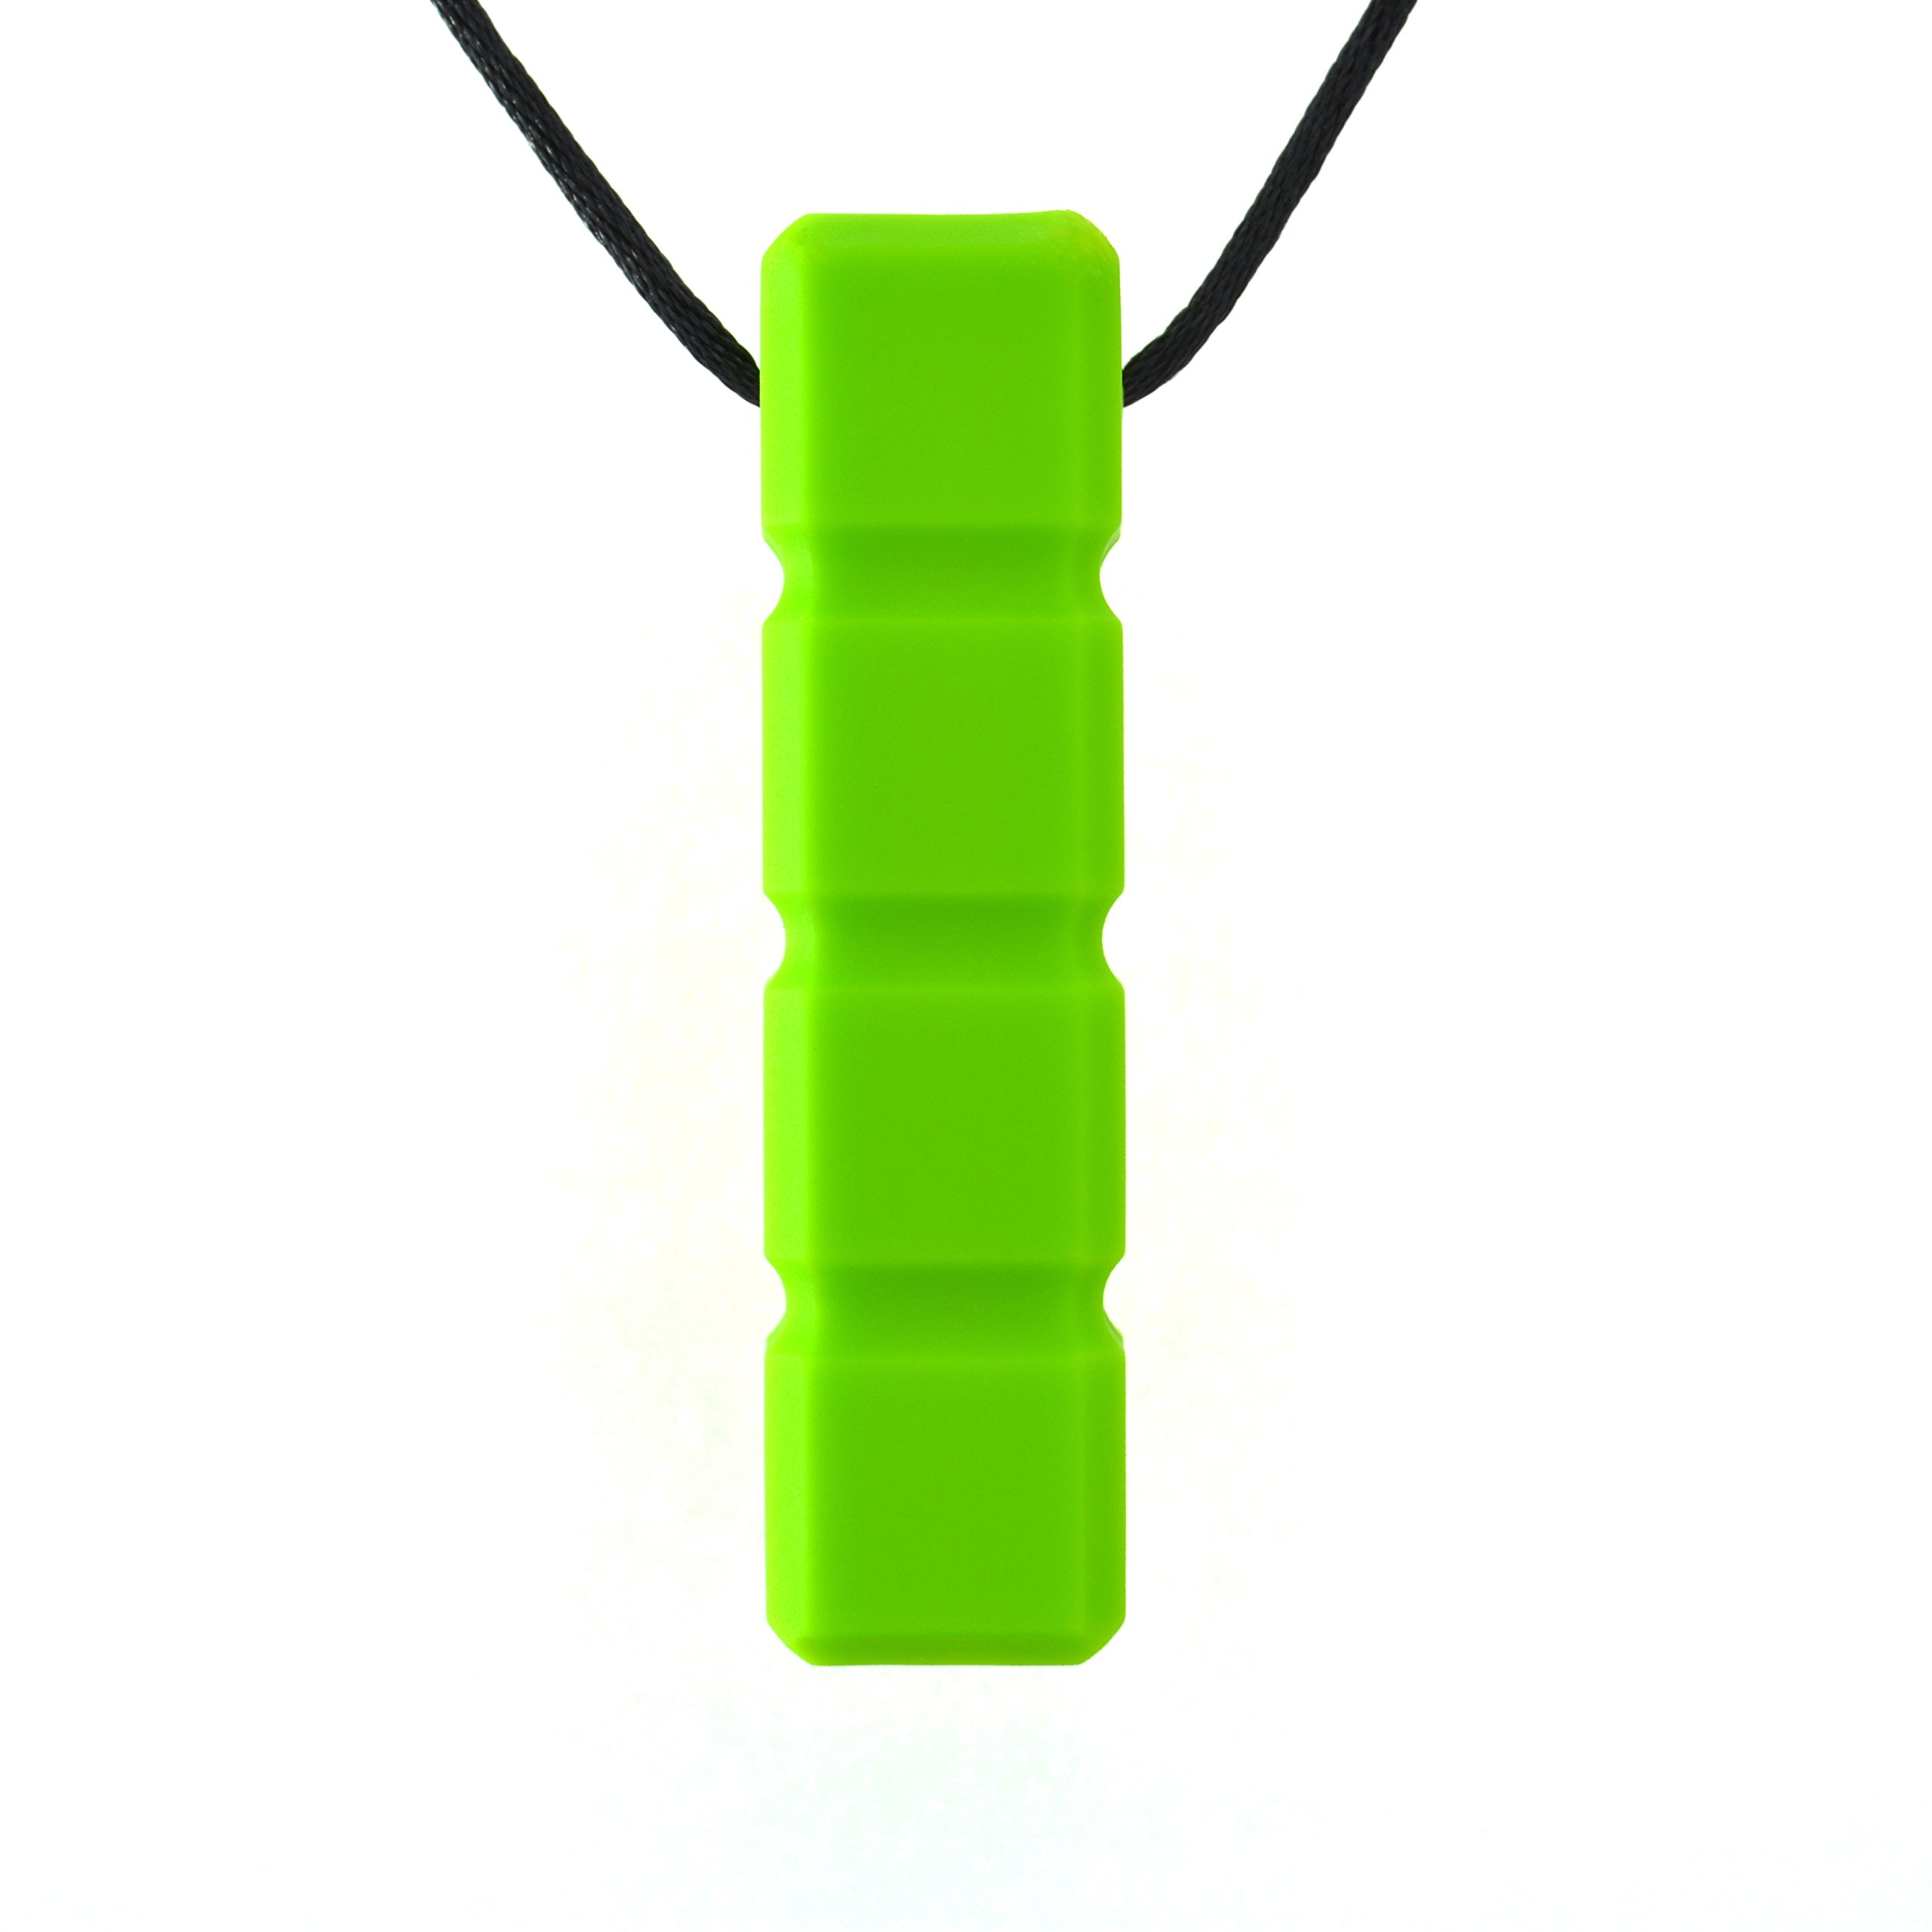 Quell-O Quad-Blockz Chewelry Oral Motor Sensory Aid Chewable Necklace - For Mild Chewers Only - Tough, Green - by by Quell-O